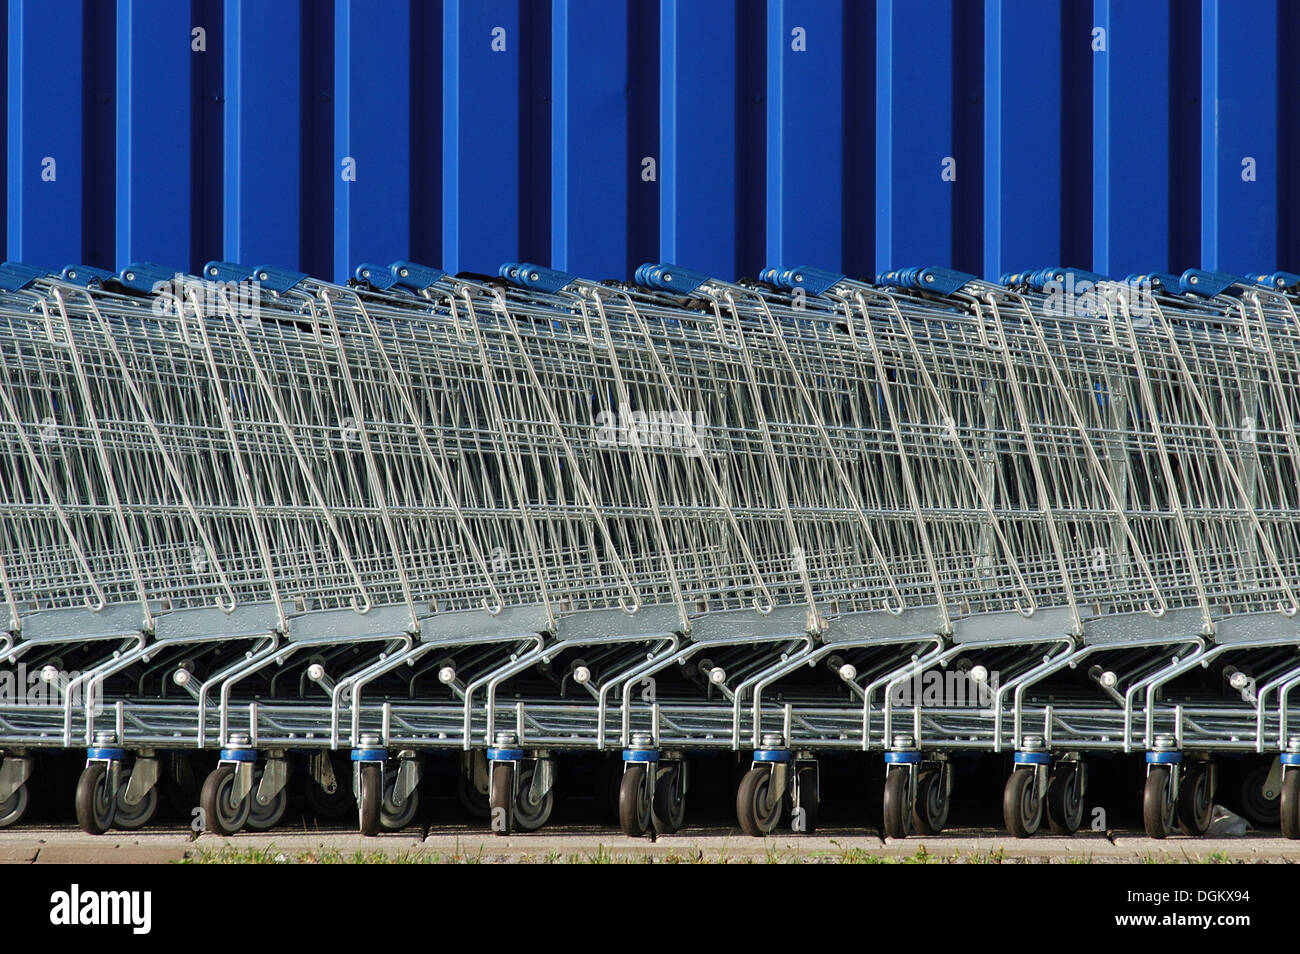 ikea shopping carts hamburg hamburg germany stockfoto lizenzfreies bild 61903328 alamy. Black Bedroom Furniture Sets. Home Design Ideas